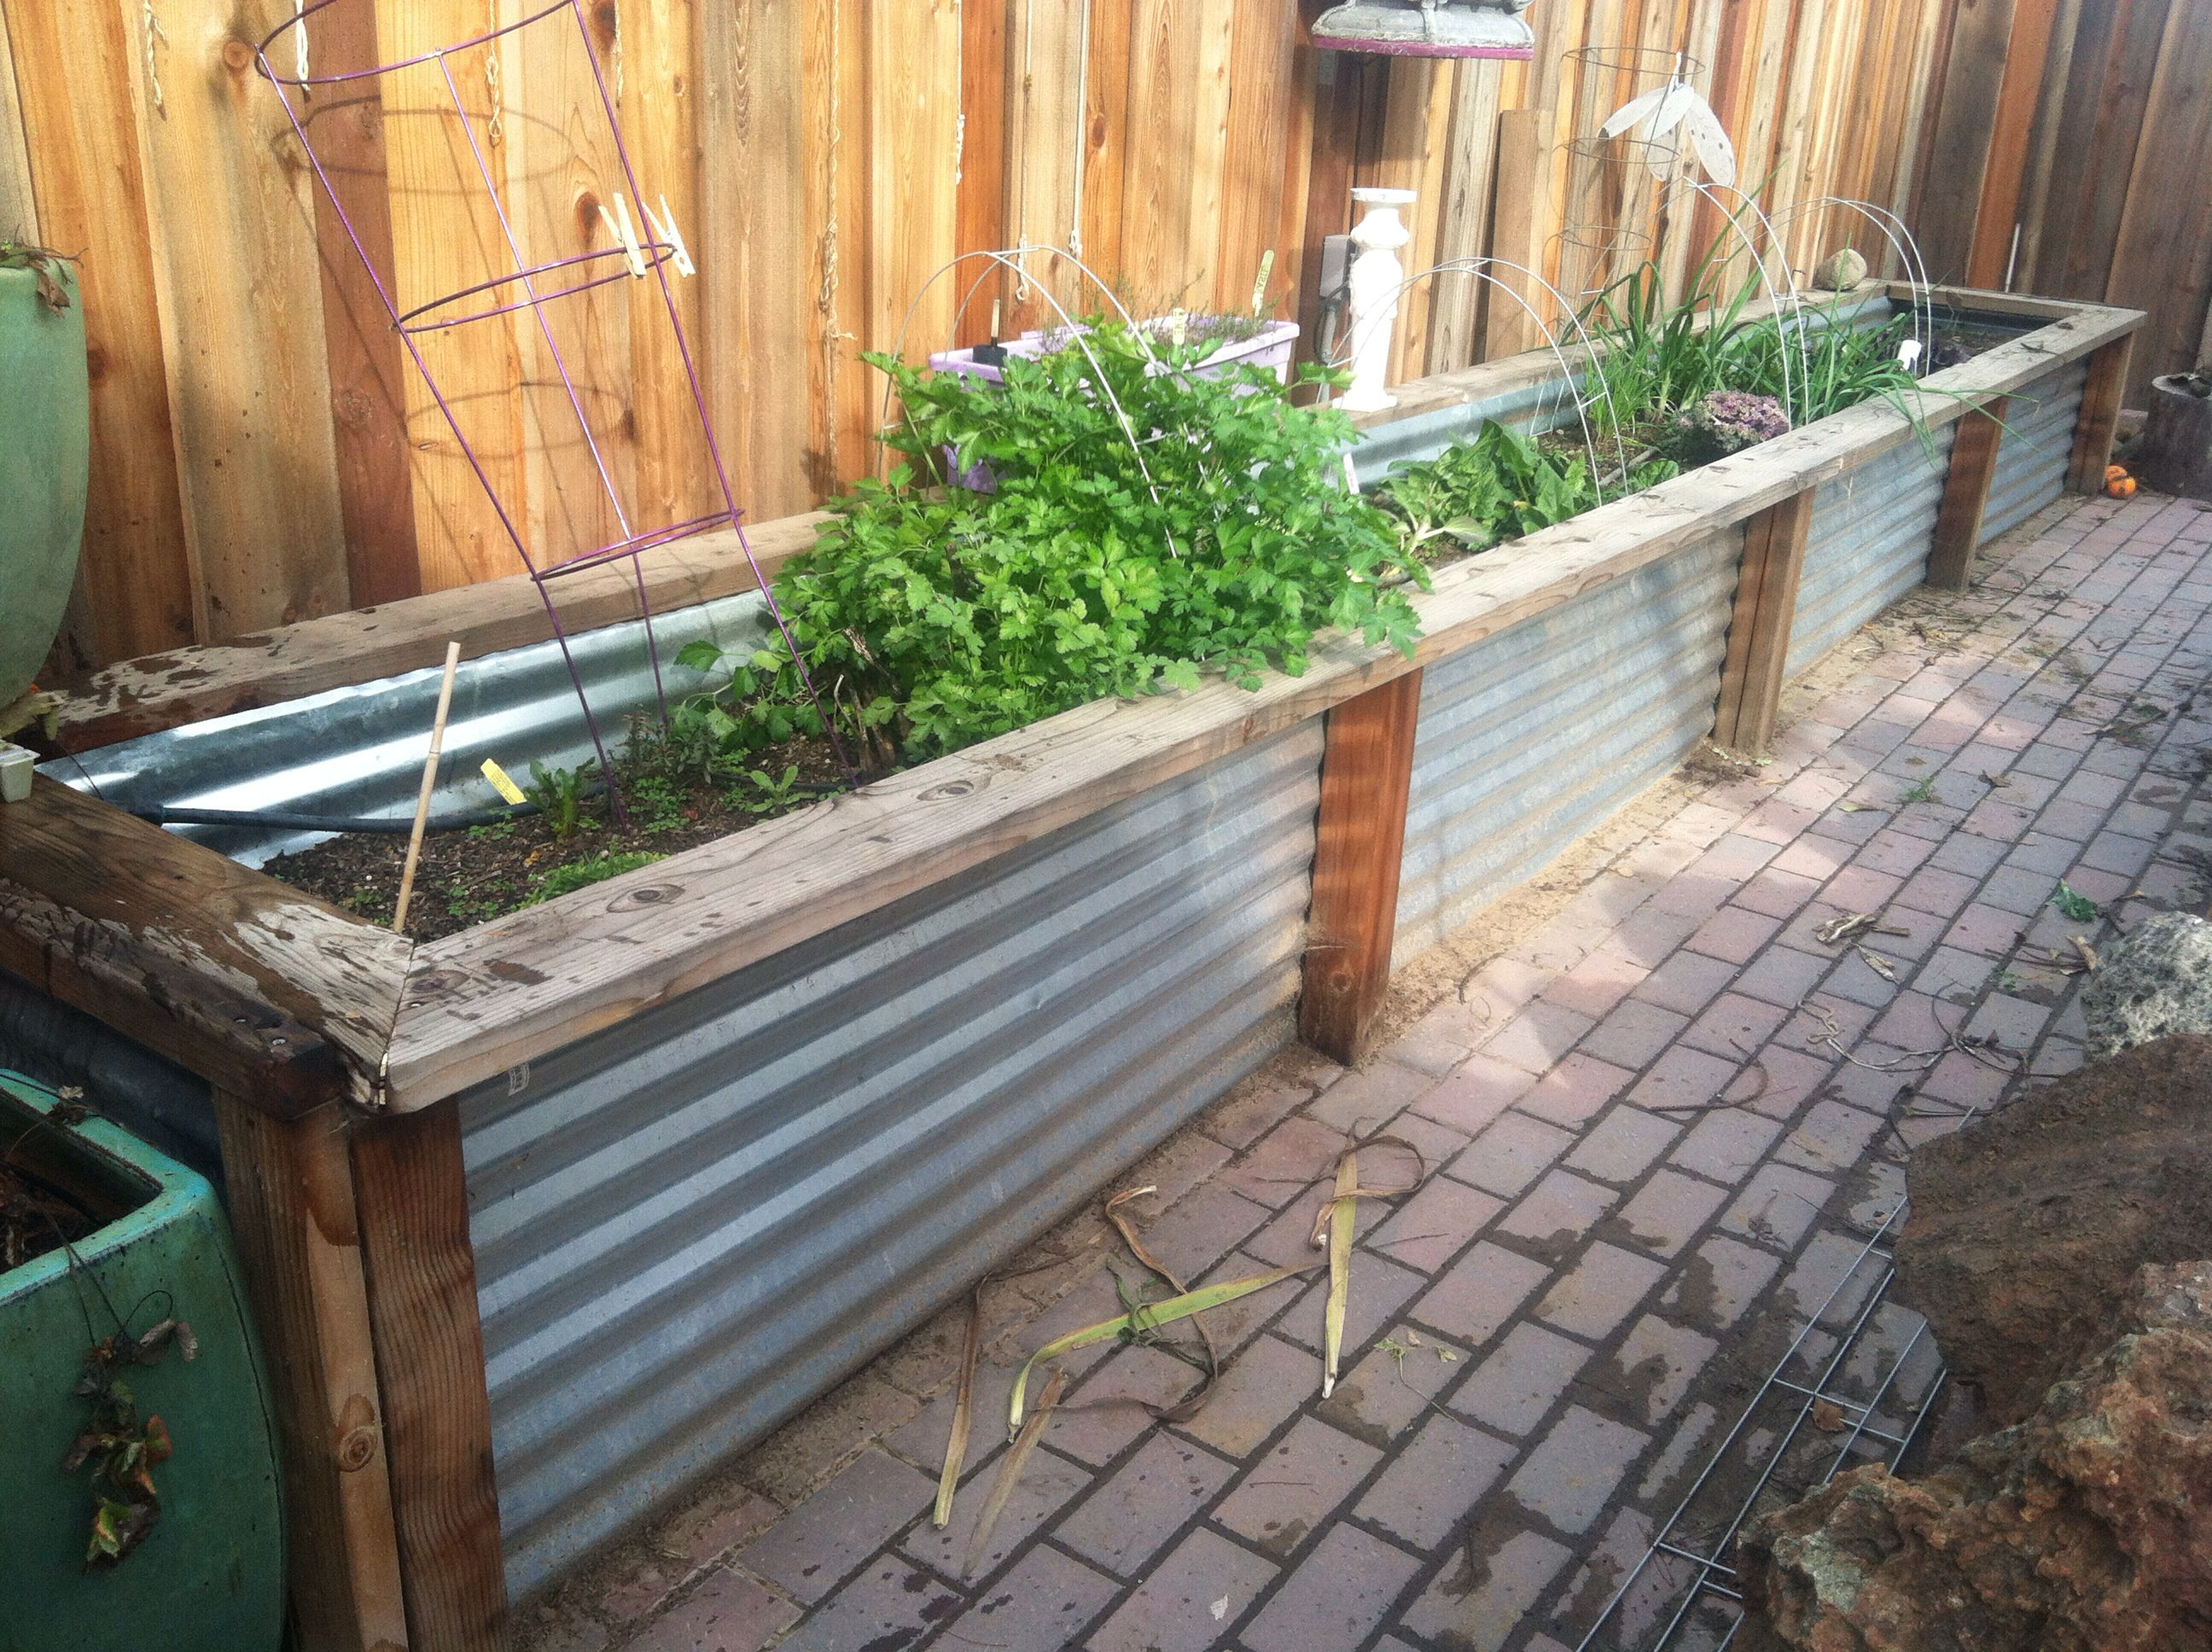 Raised metal flower bed box & Raised metal flower bed box | For the Farm | Pinterest | Yards and ... Aboutintivar.Com